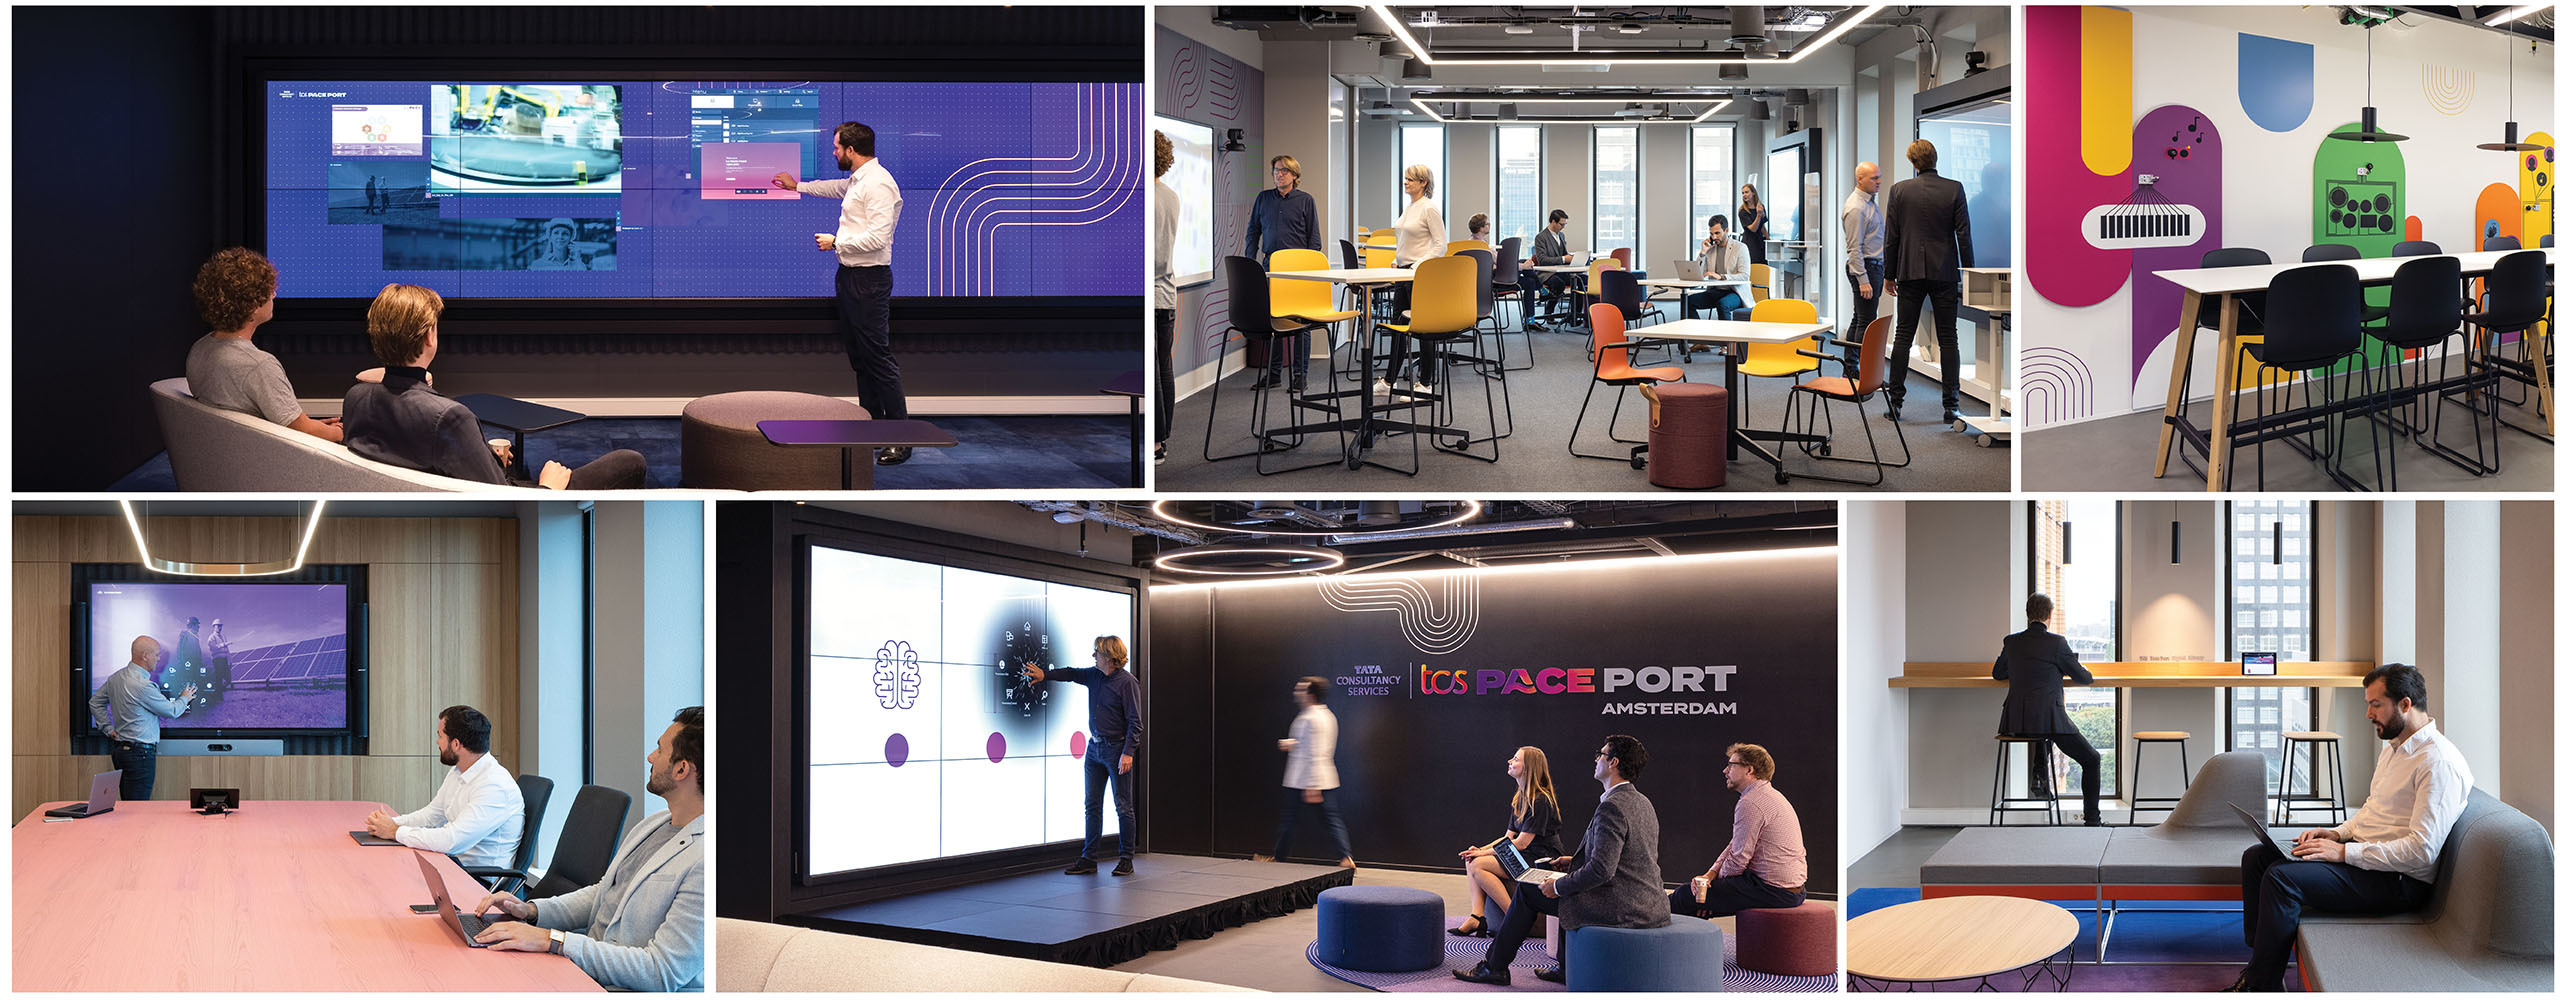 Paceport collage